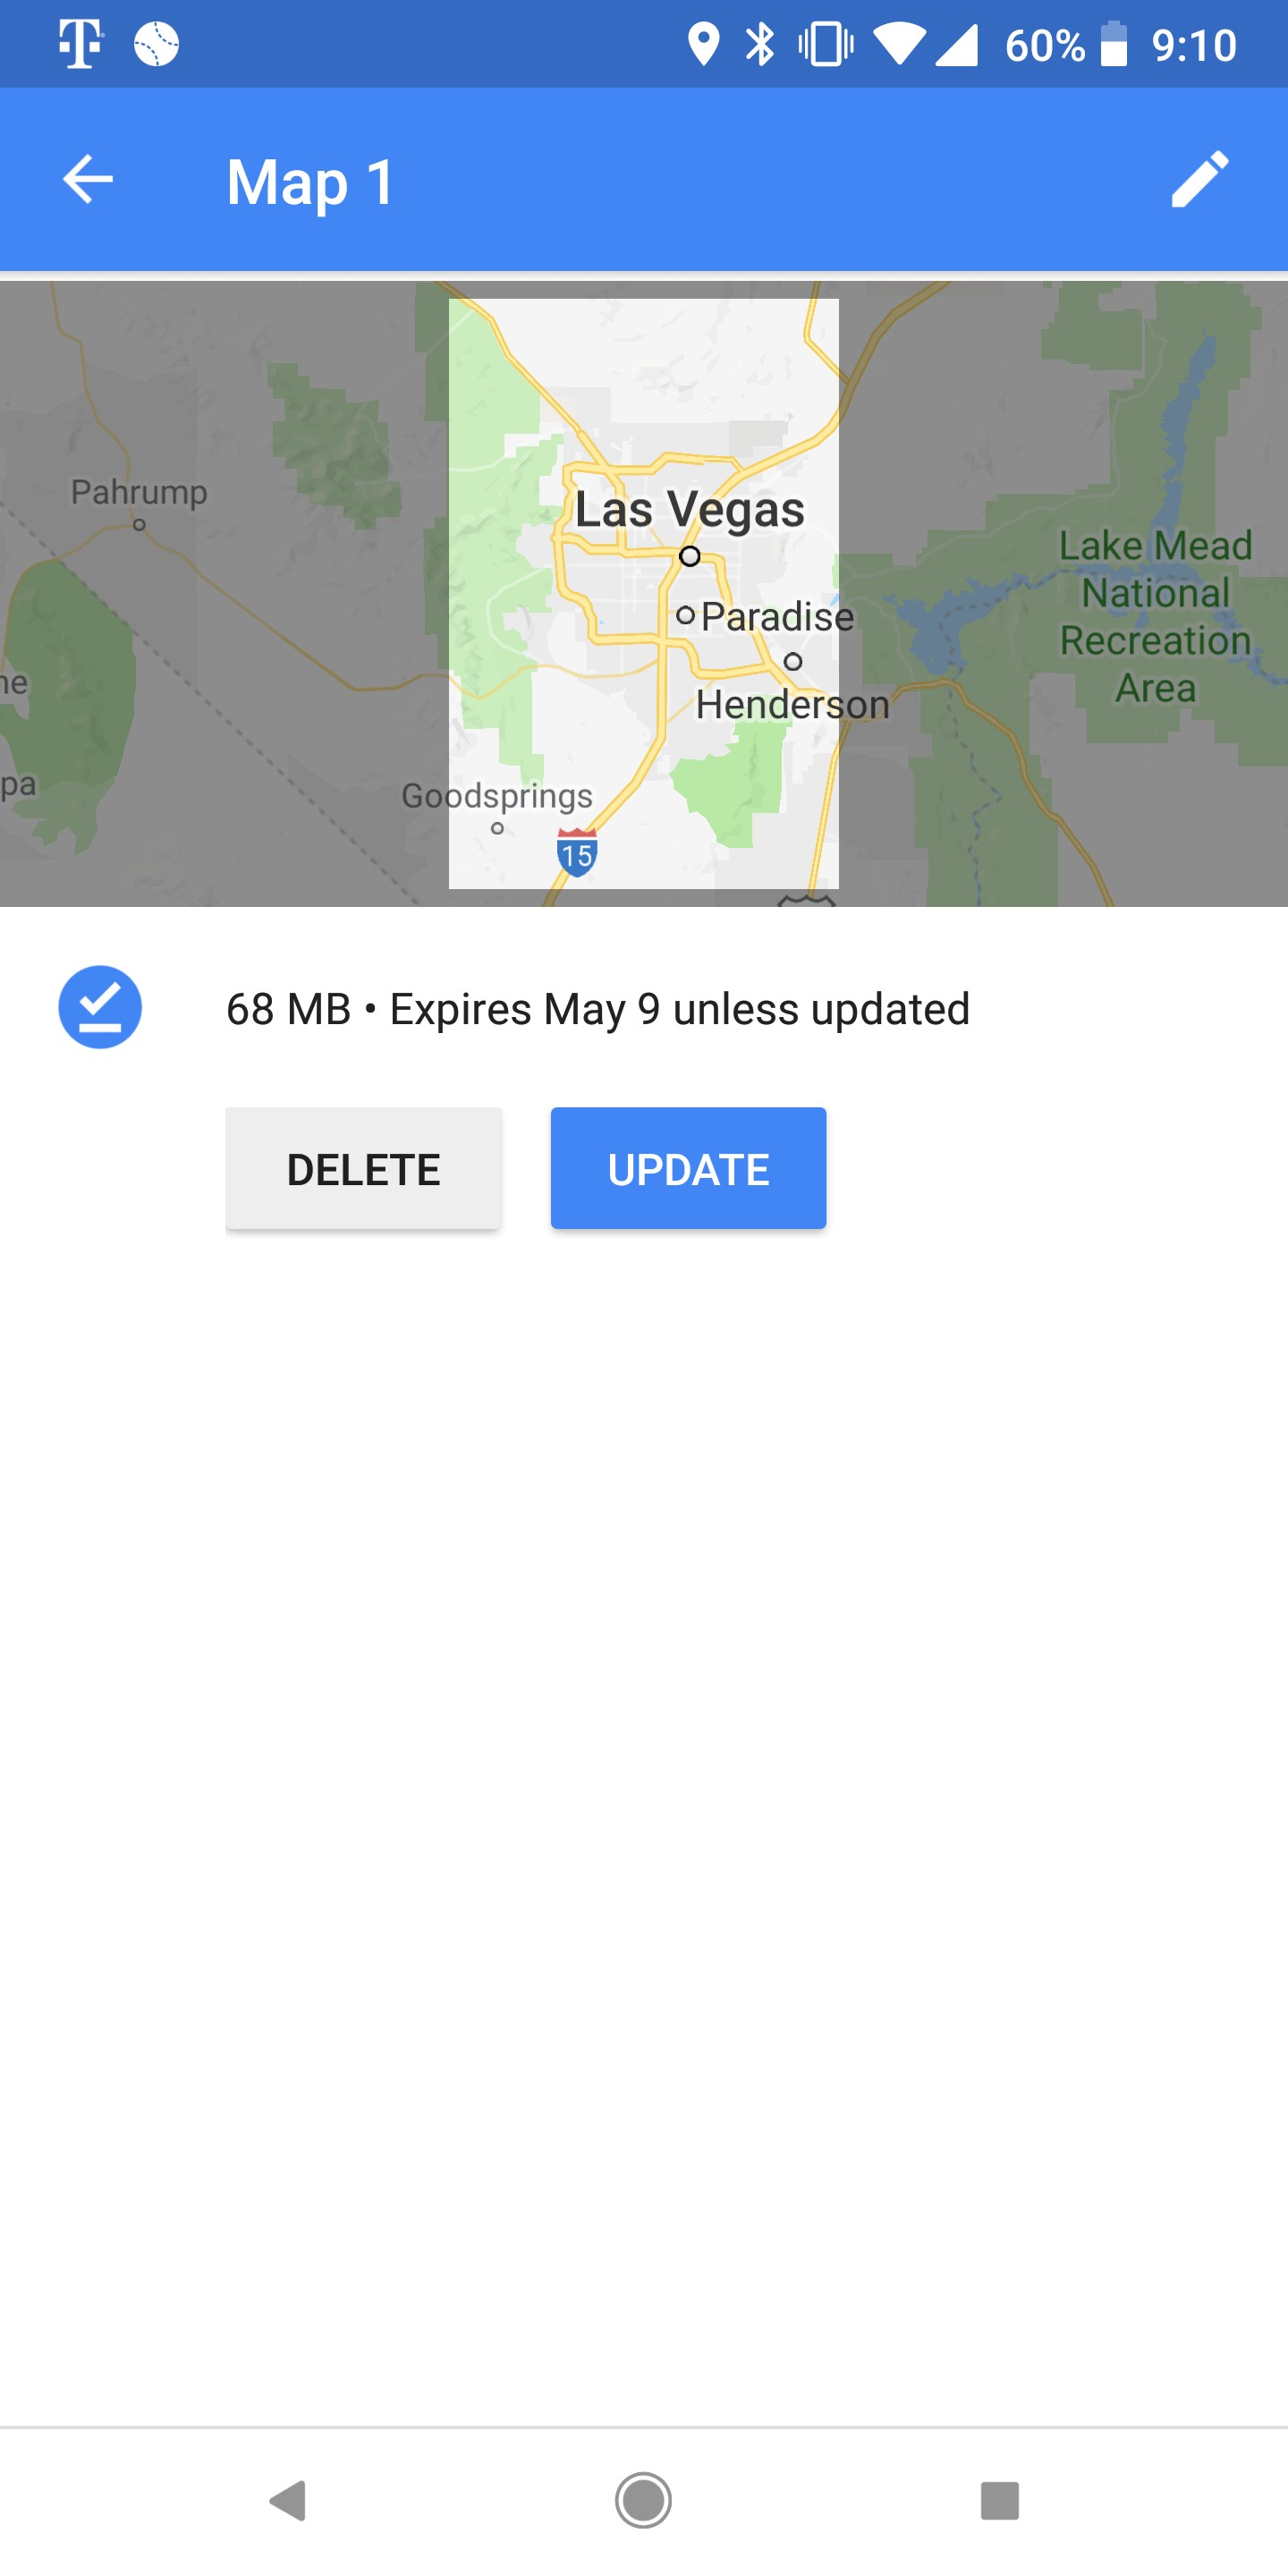 How to use Google Maps offline on Android - 9to5Google Saving Offline Maps Google on google maps advertising, google maps error, google maps hidden, google maps home, google maps desktop, google maps de, google maps web, google maps search, google maps print, google maps windows, google maps 280, google maps cuba, google maps iphone, google maps 2014, google maps lt, google maps lv, google maps online, google maps mobile, google maps android,